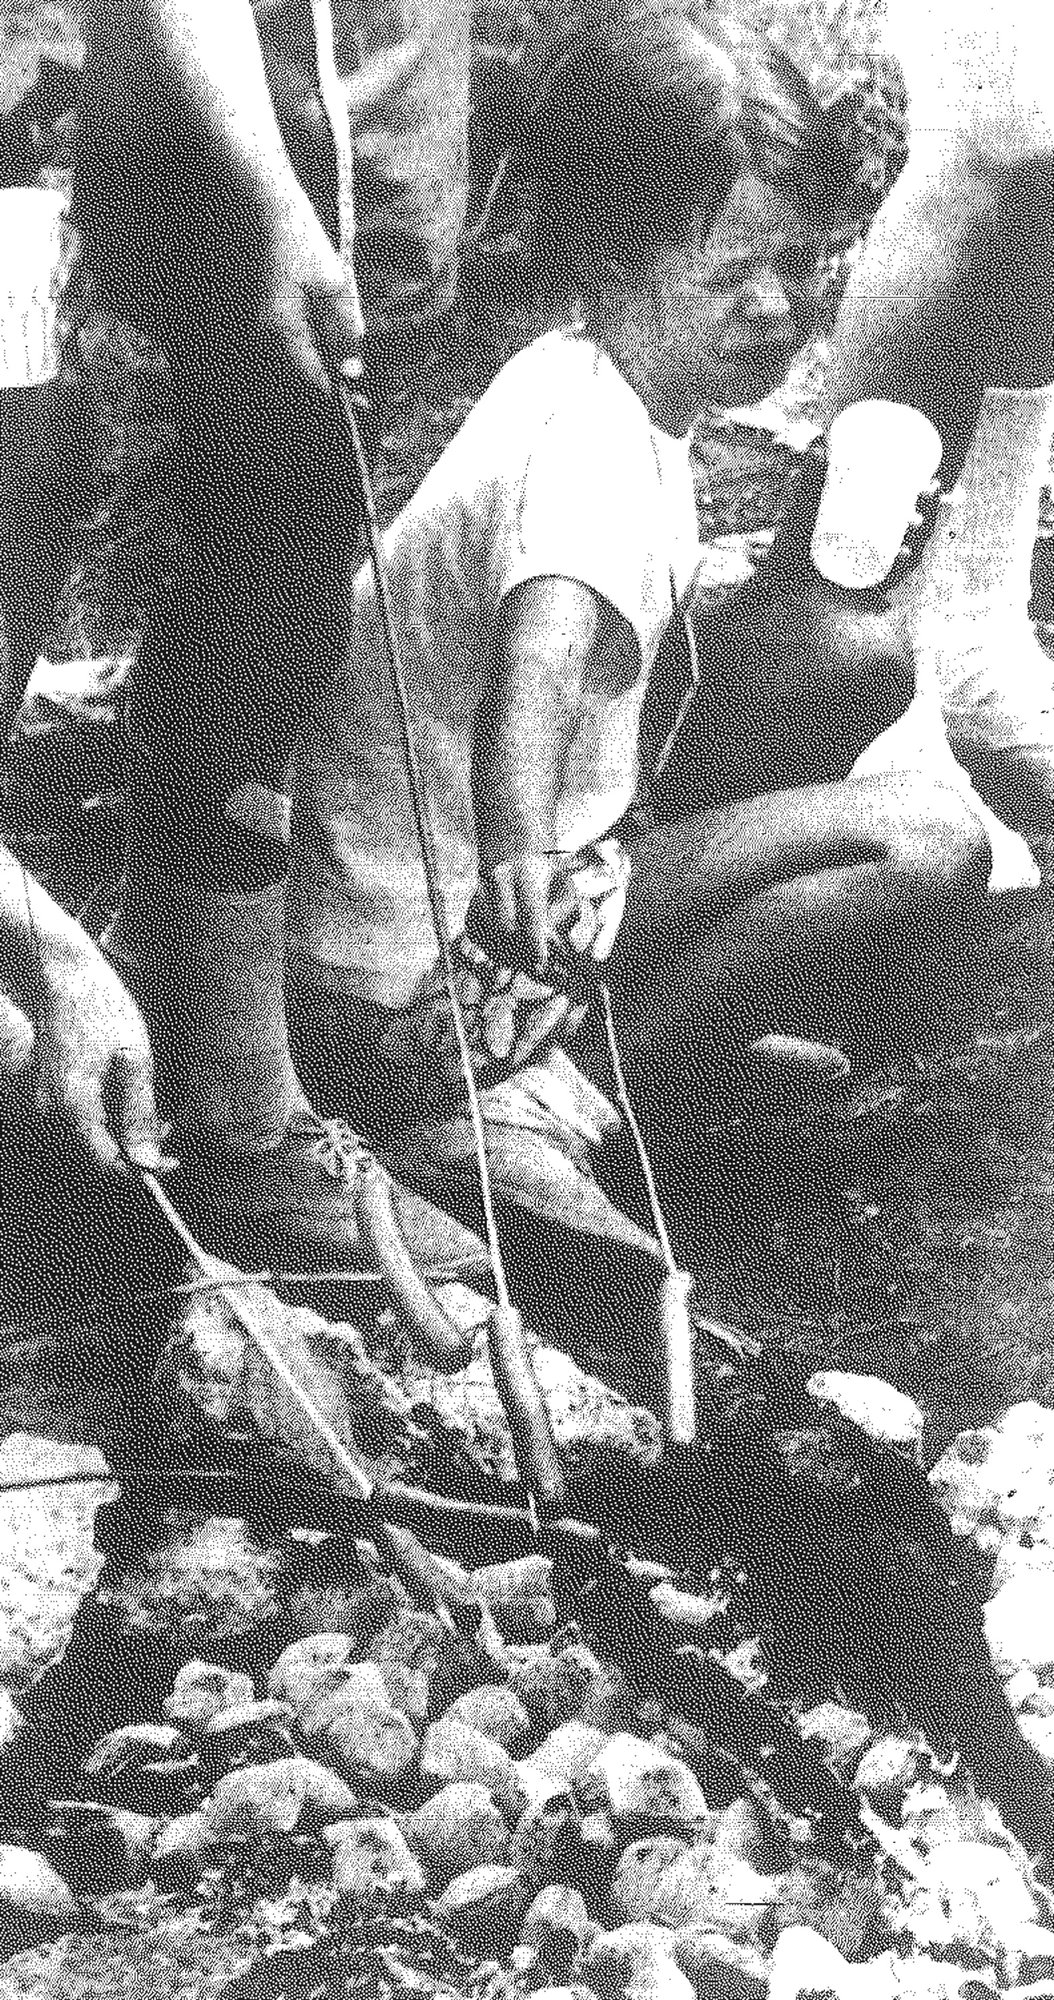 "1977 - ""This hot dog better be worth it"" says camper Connie Kendrick as the girls prepare their lunch. Sumter neighborhood Girl Scouts had two weeks at Camp Hideaway off S.C. 441 with arts, crafts, singing and other activities. All ages of Girl Scouts participated in the camp activities, headed by B. M. Pate."